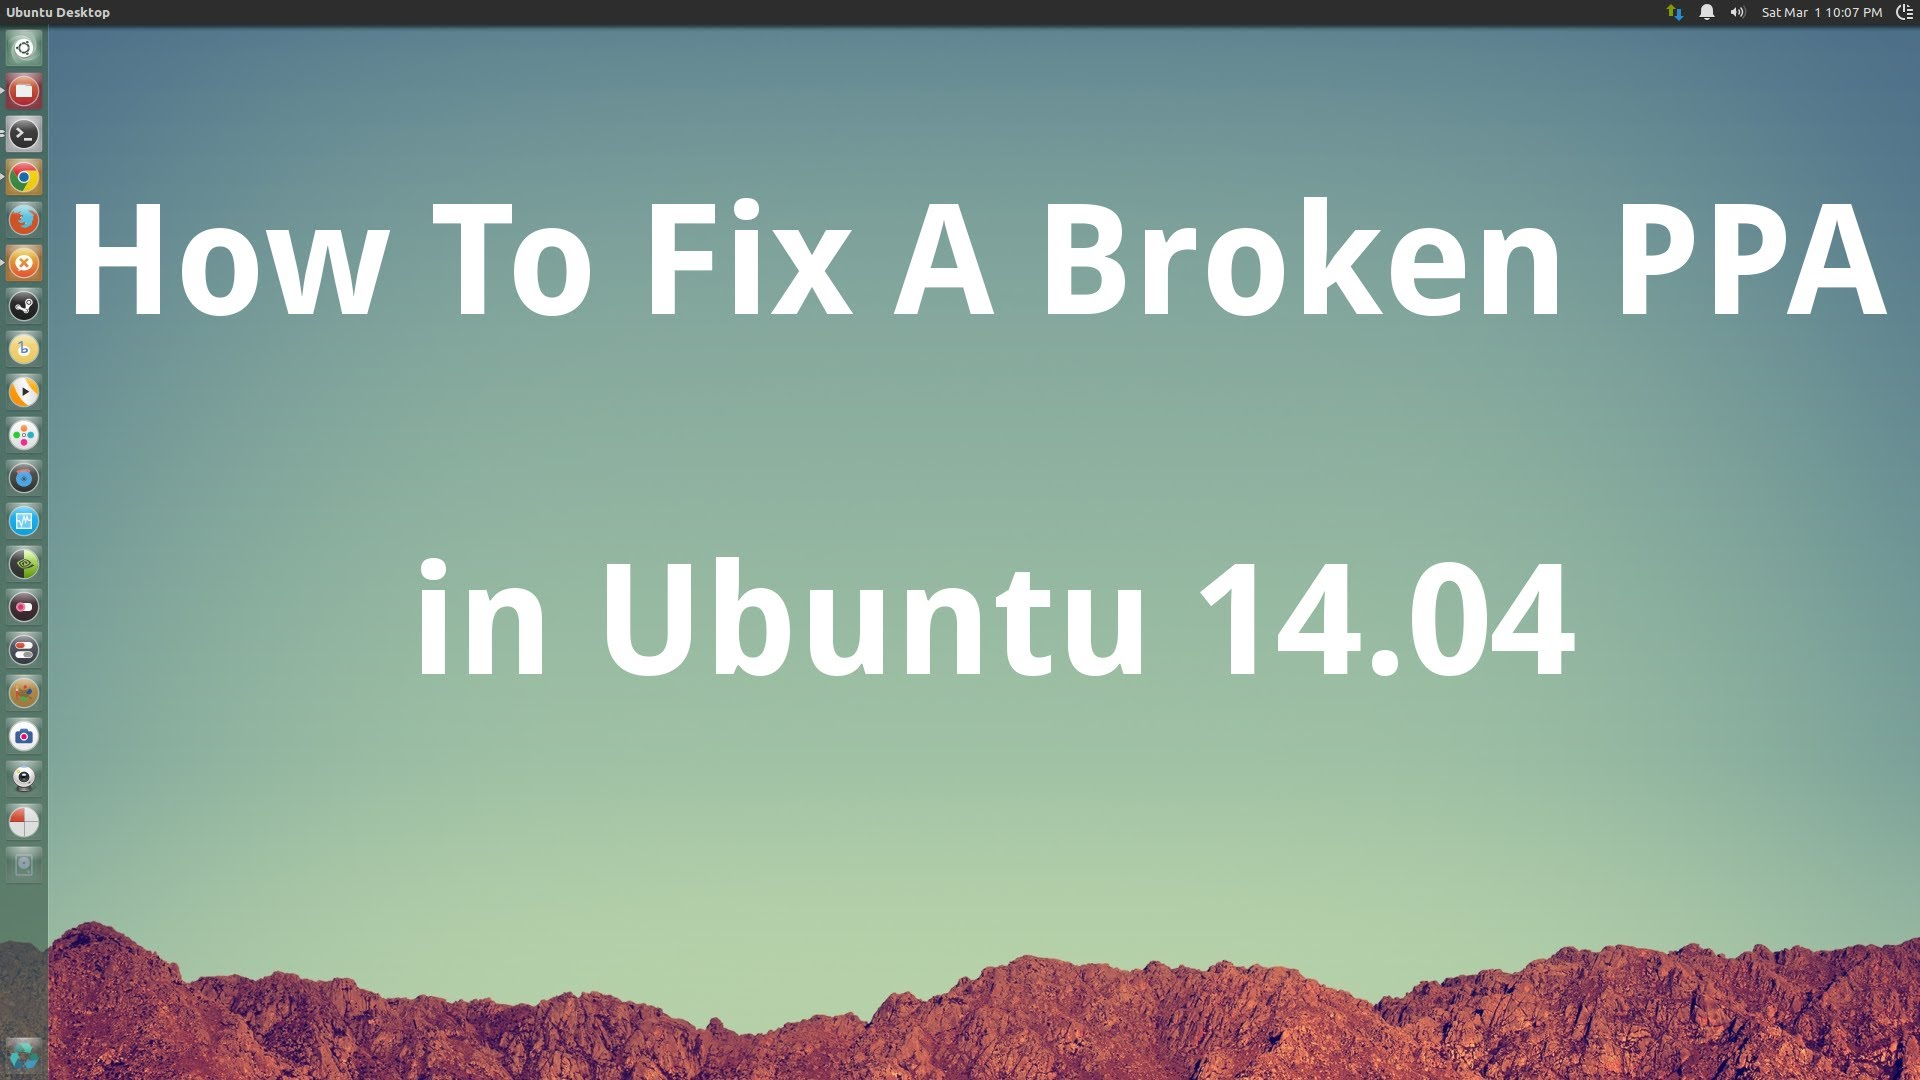 How To Fix Broken PPA Ubuntu 14.04 LTS 6